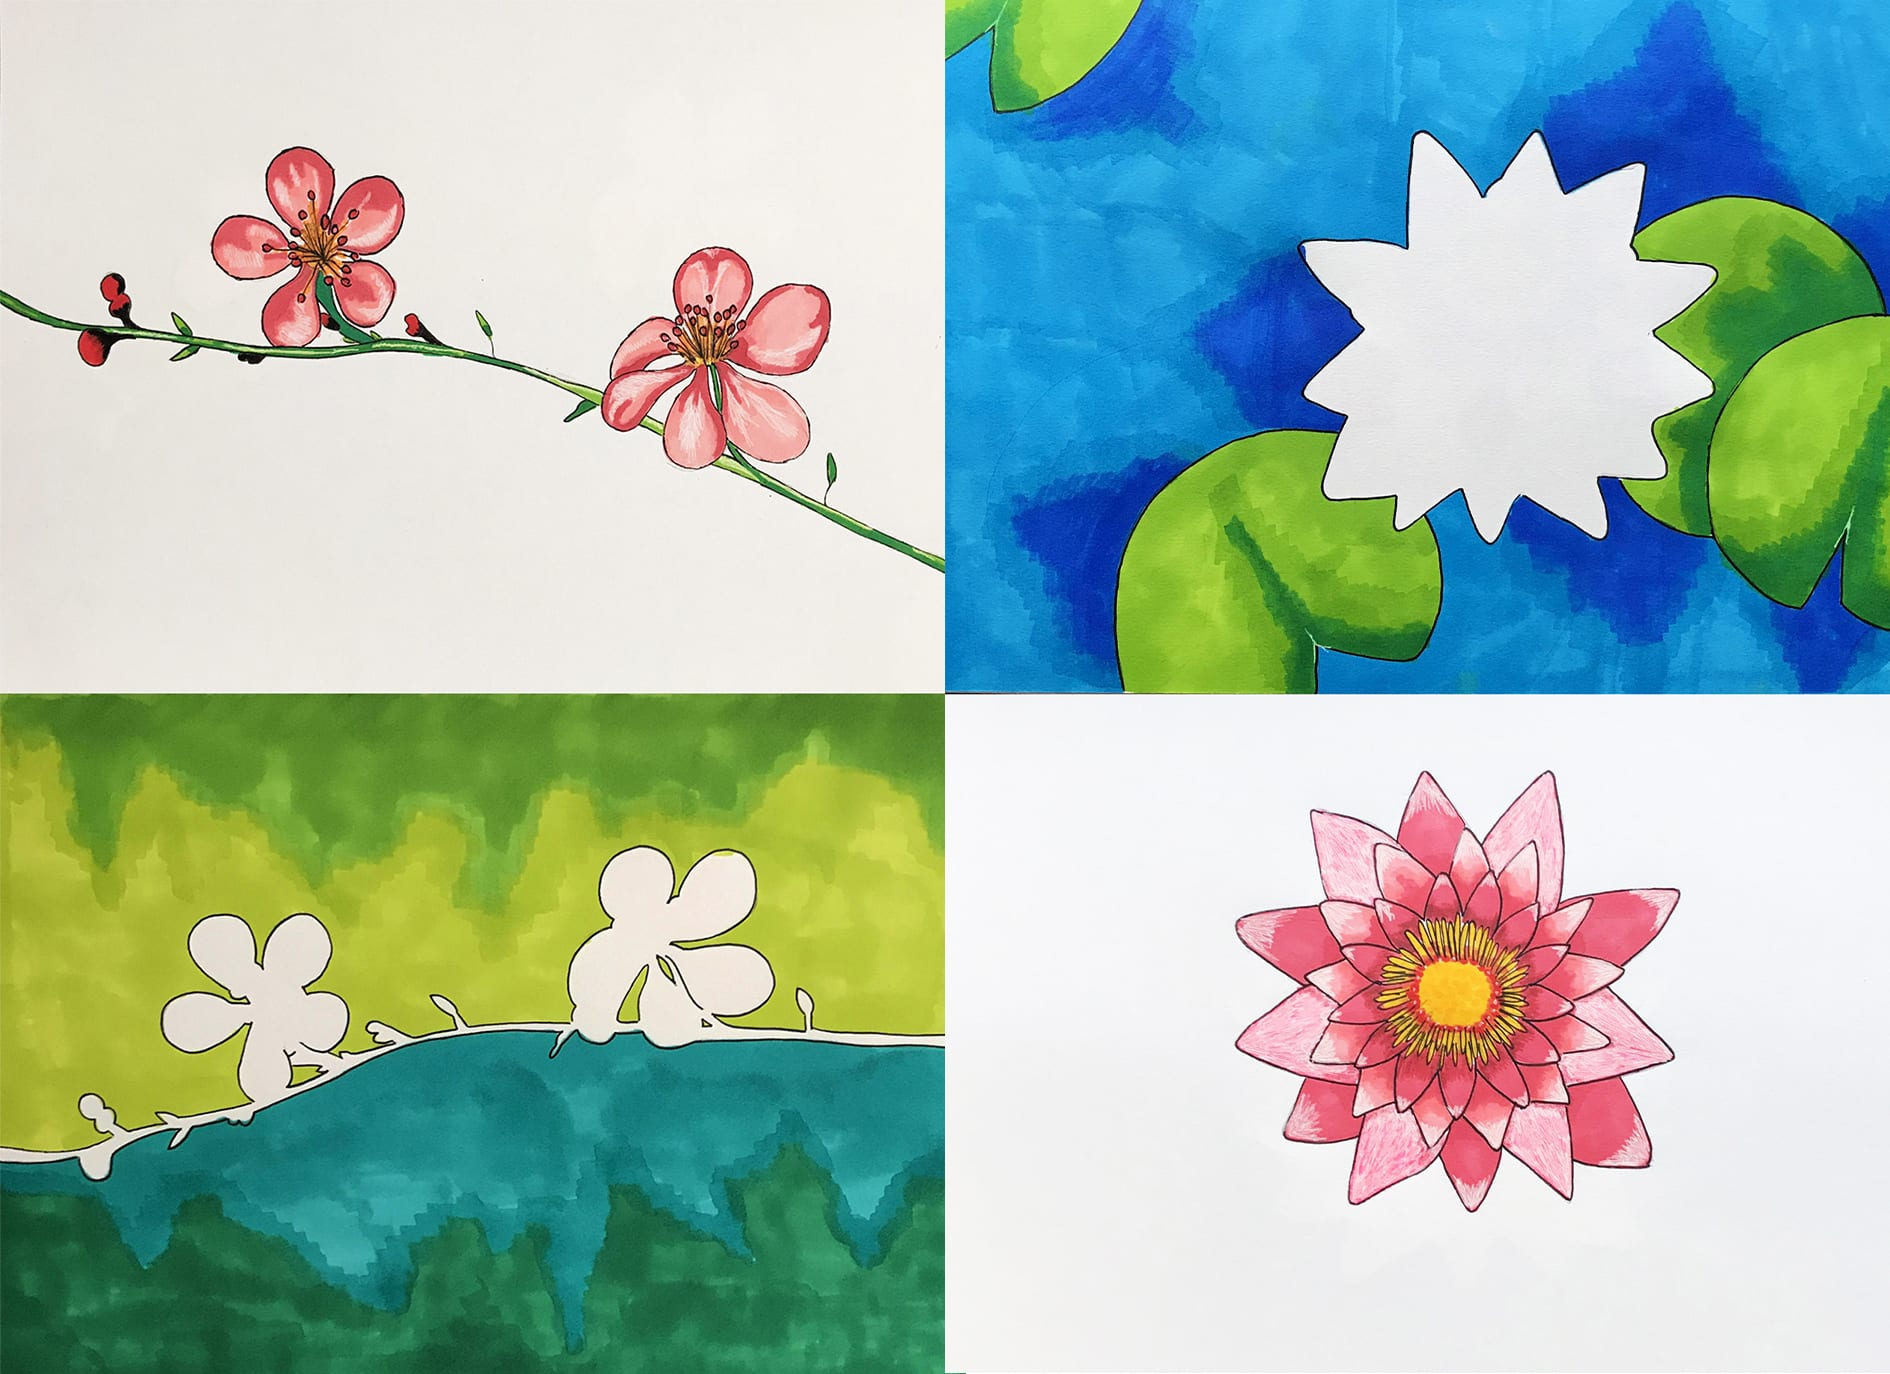 Flowers and Negative Space